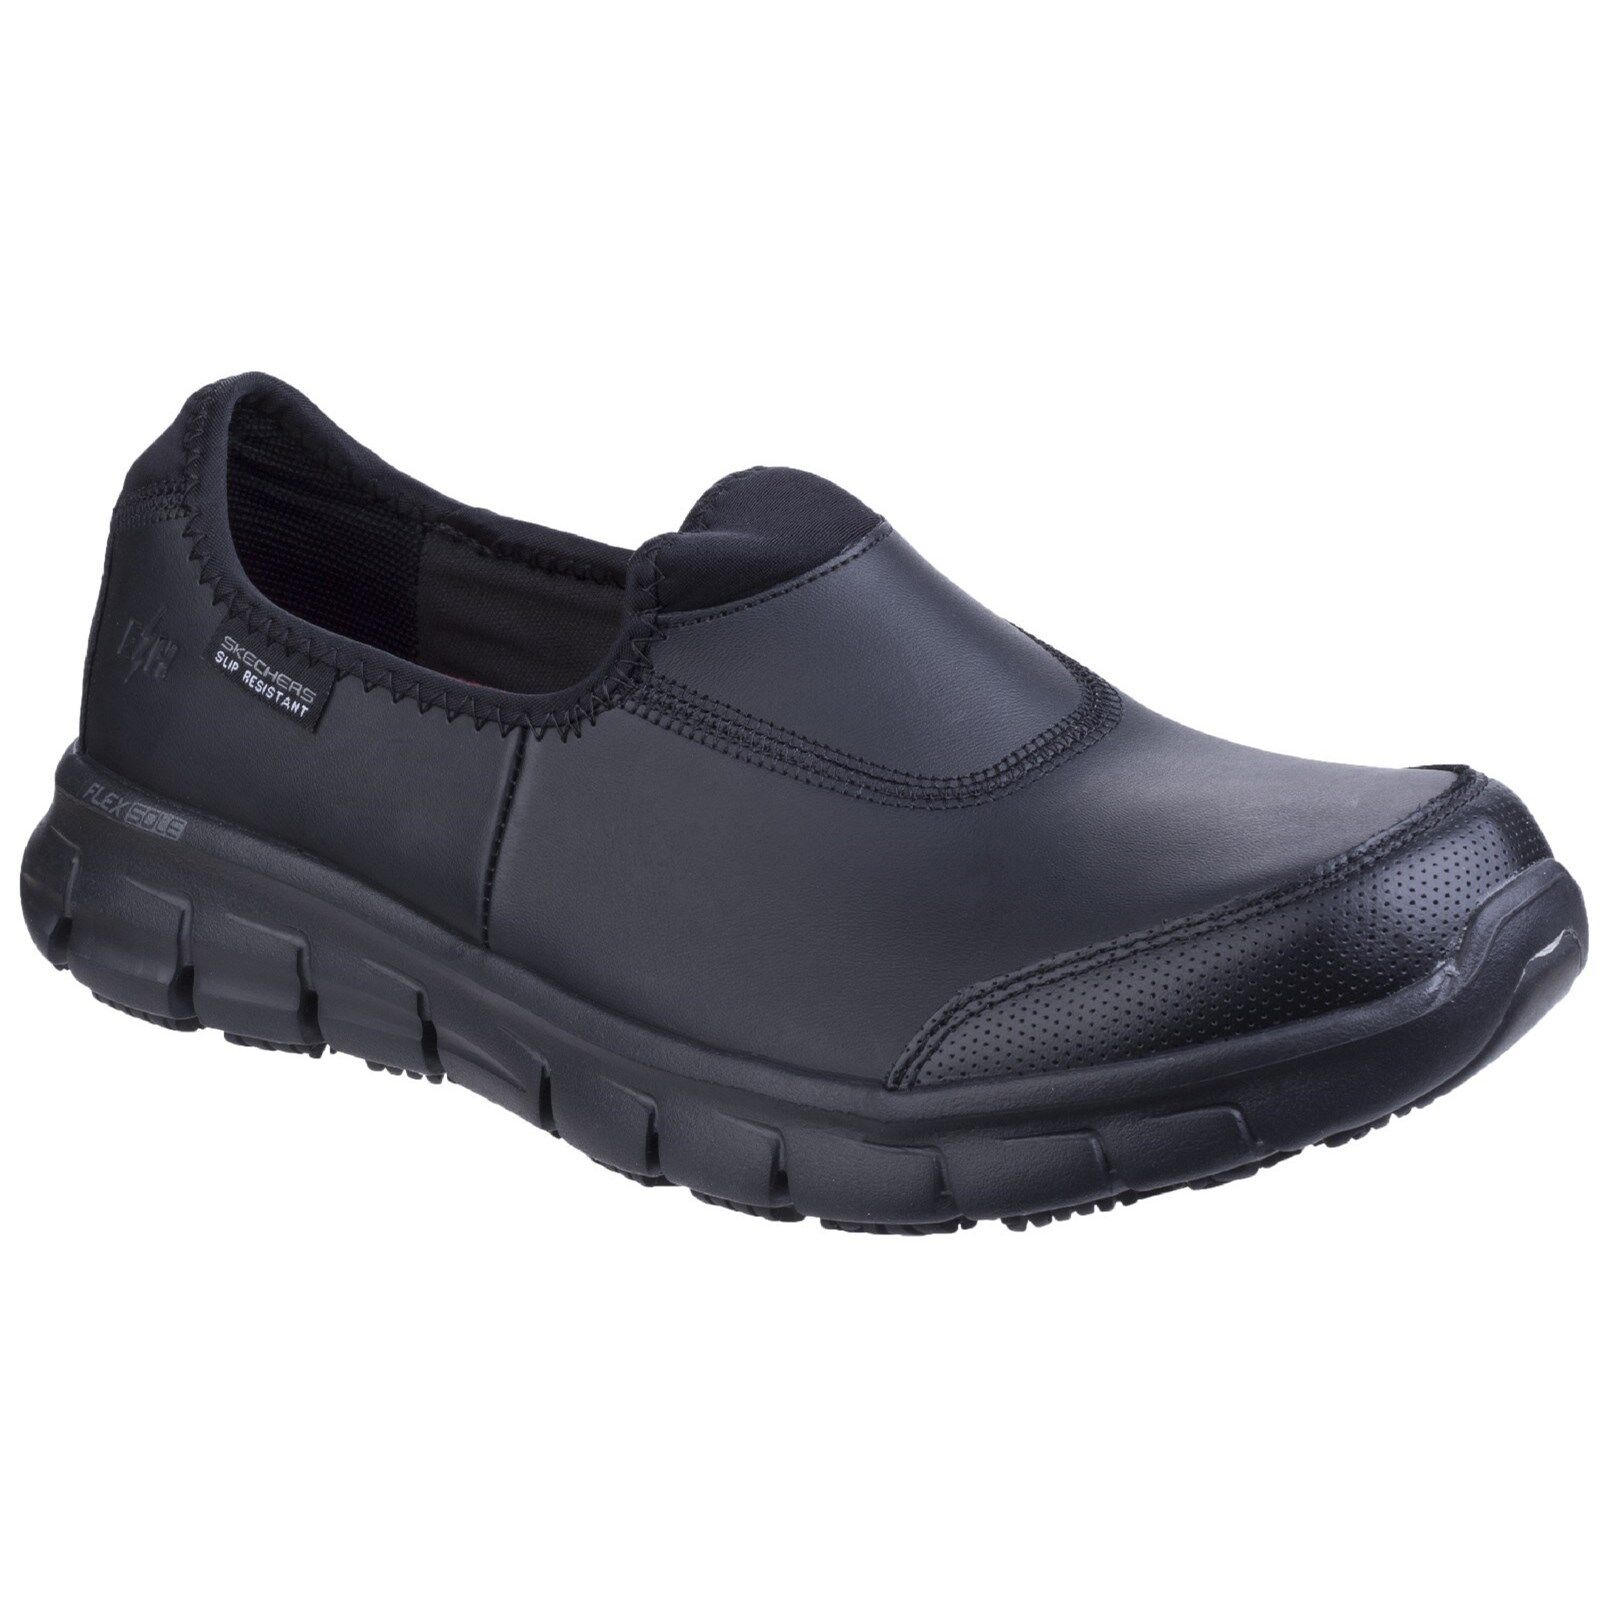 Skechers Sure Track SR Work Trainers Womens Memory Foam Slip On Leather shoes